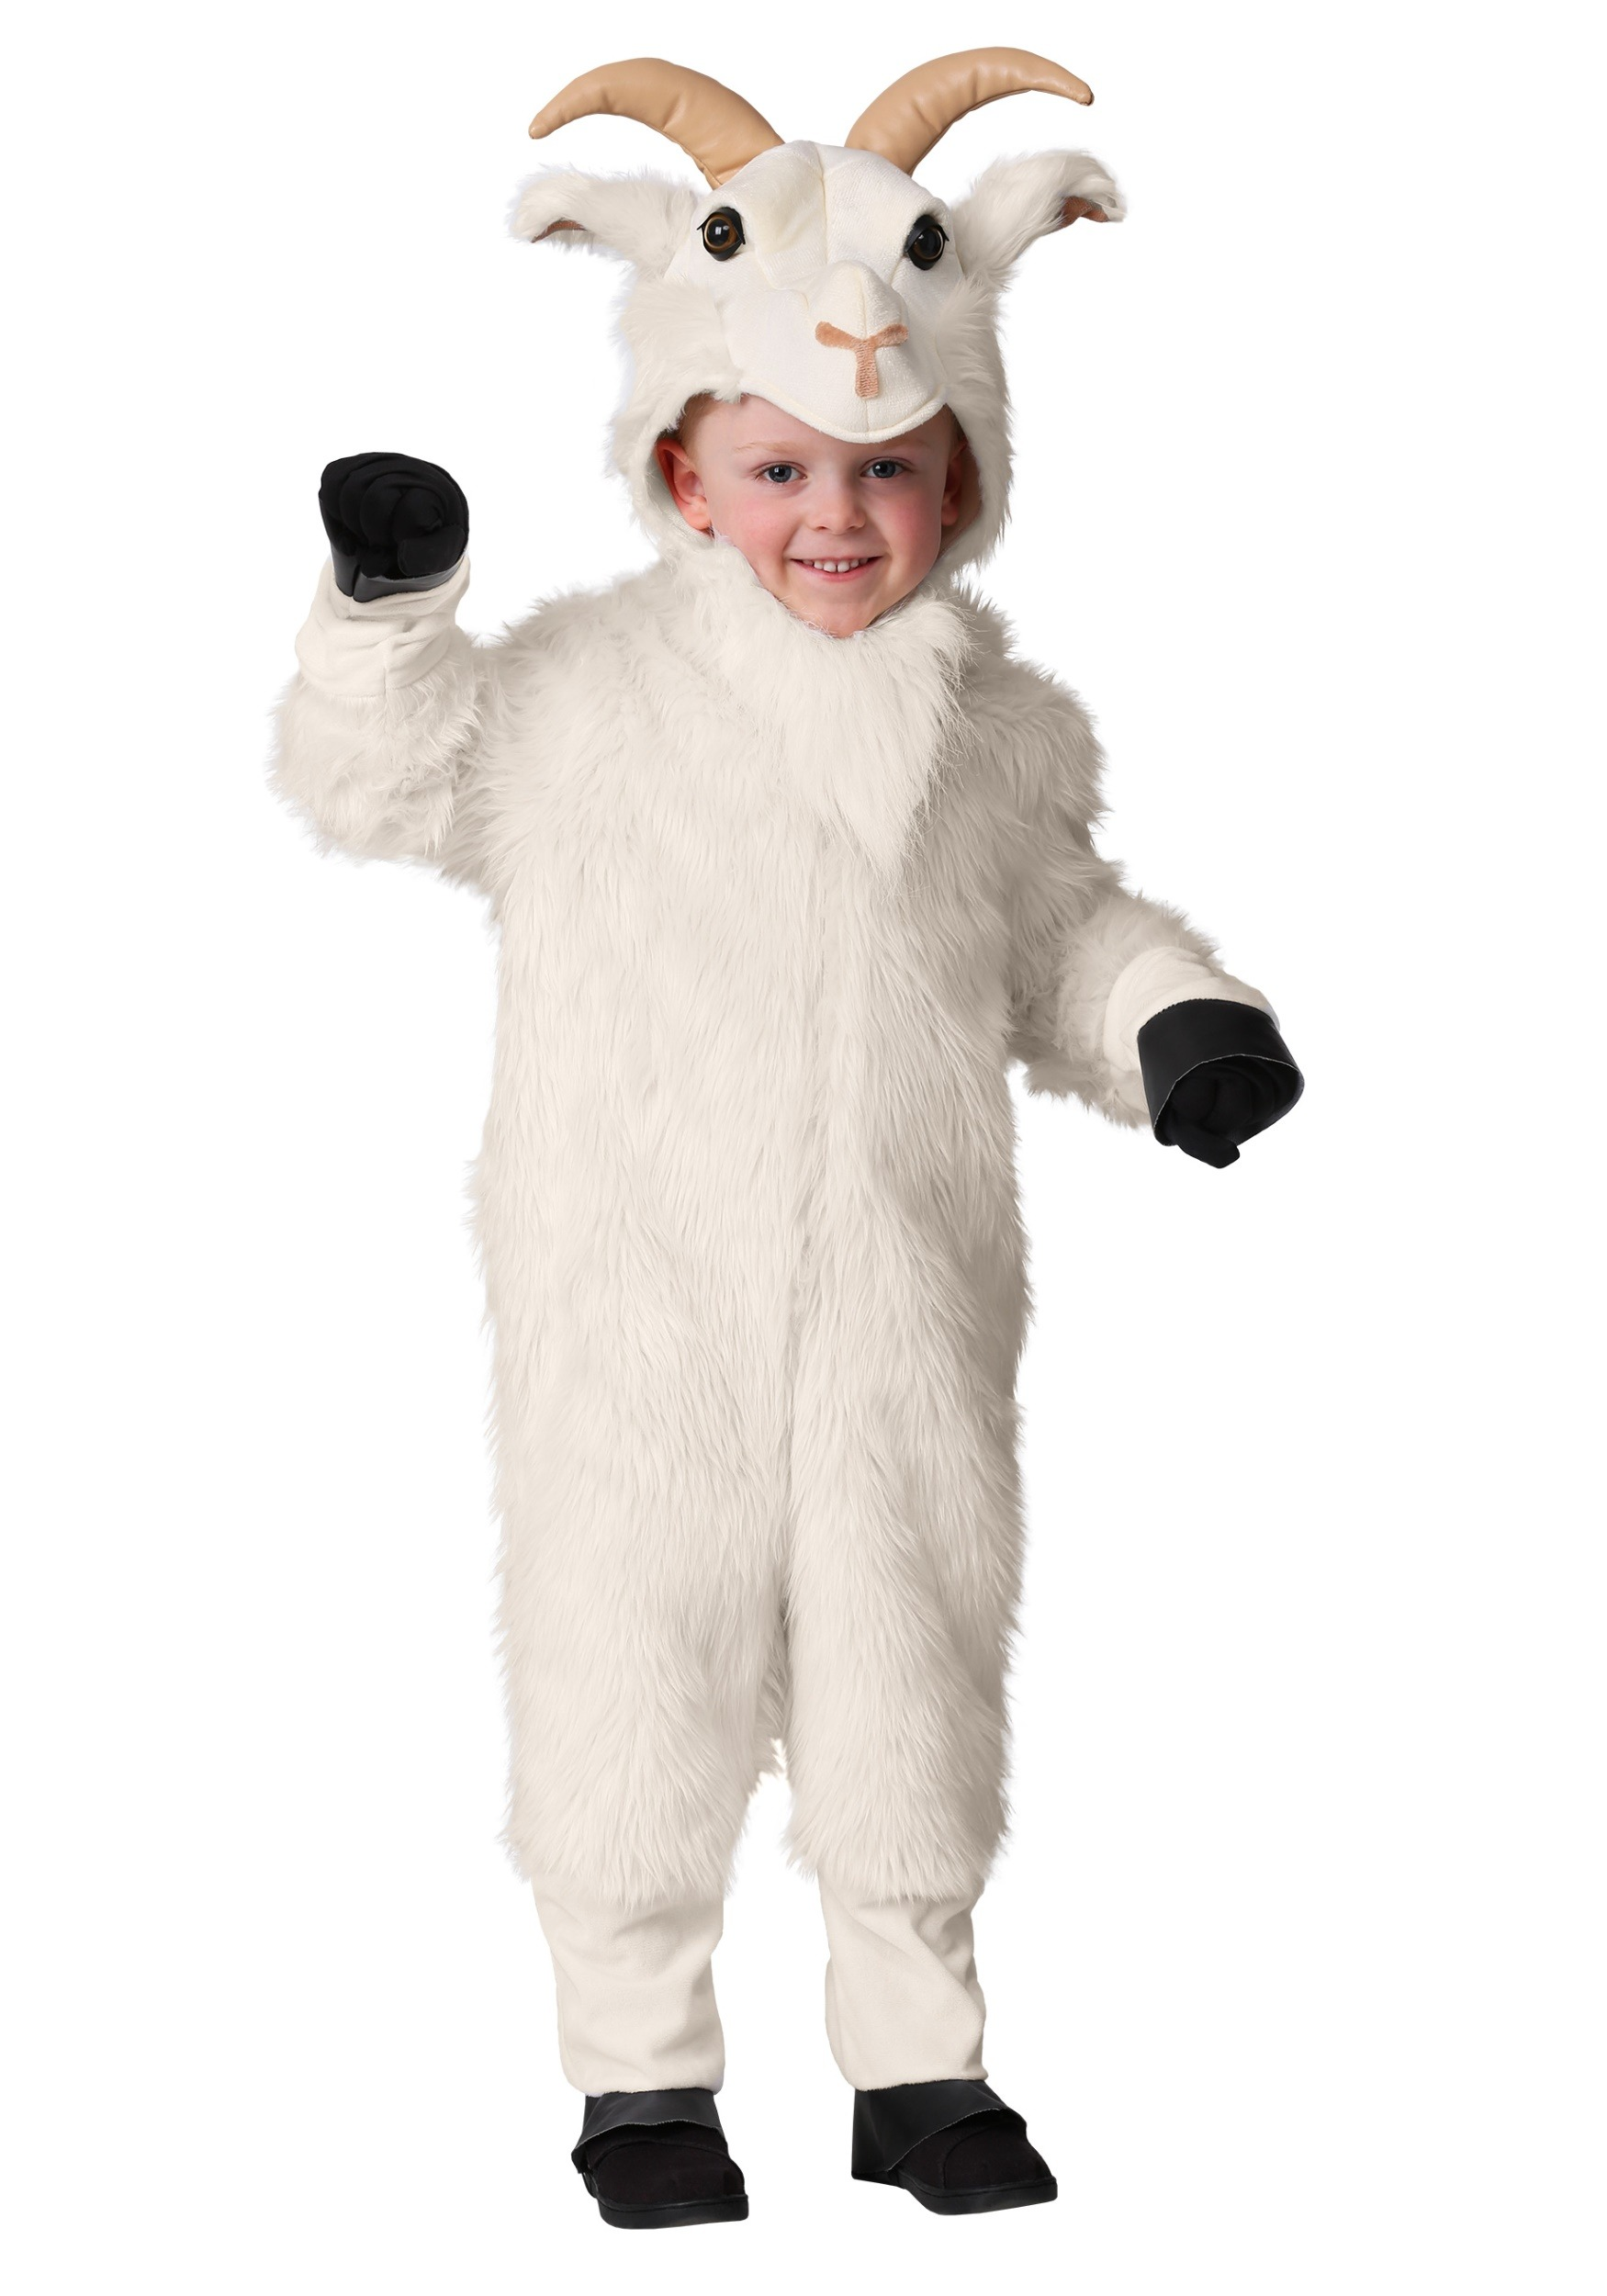 toddler-mountain-goat-costume.jpg f3a511c0d